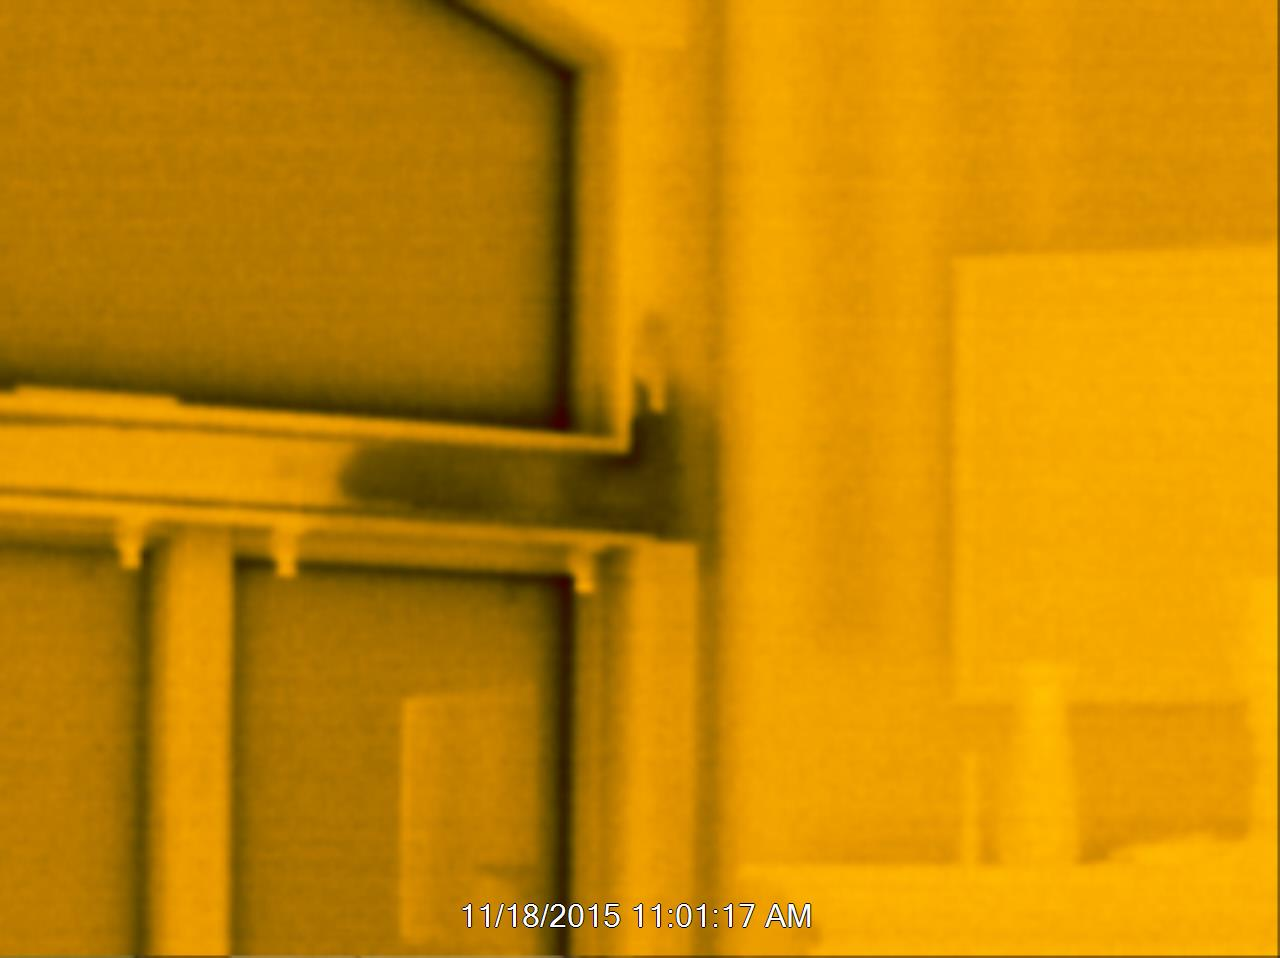 Window (IR camera).